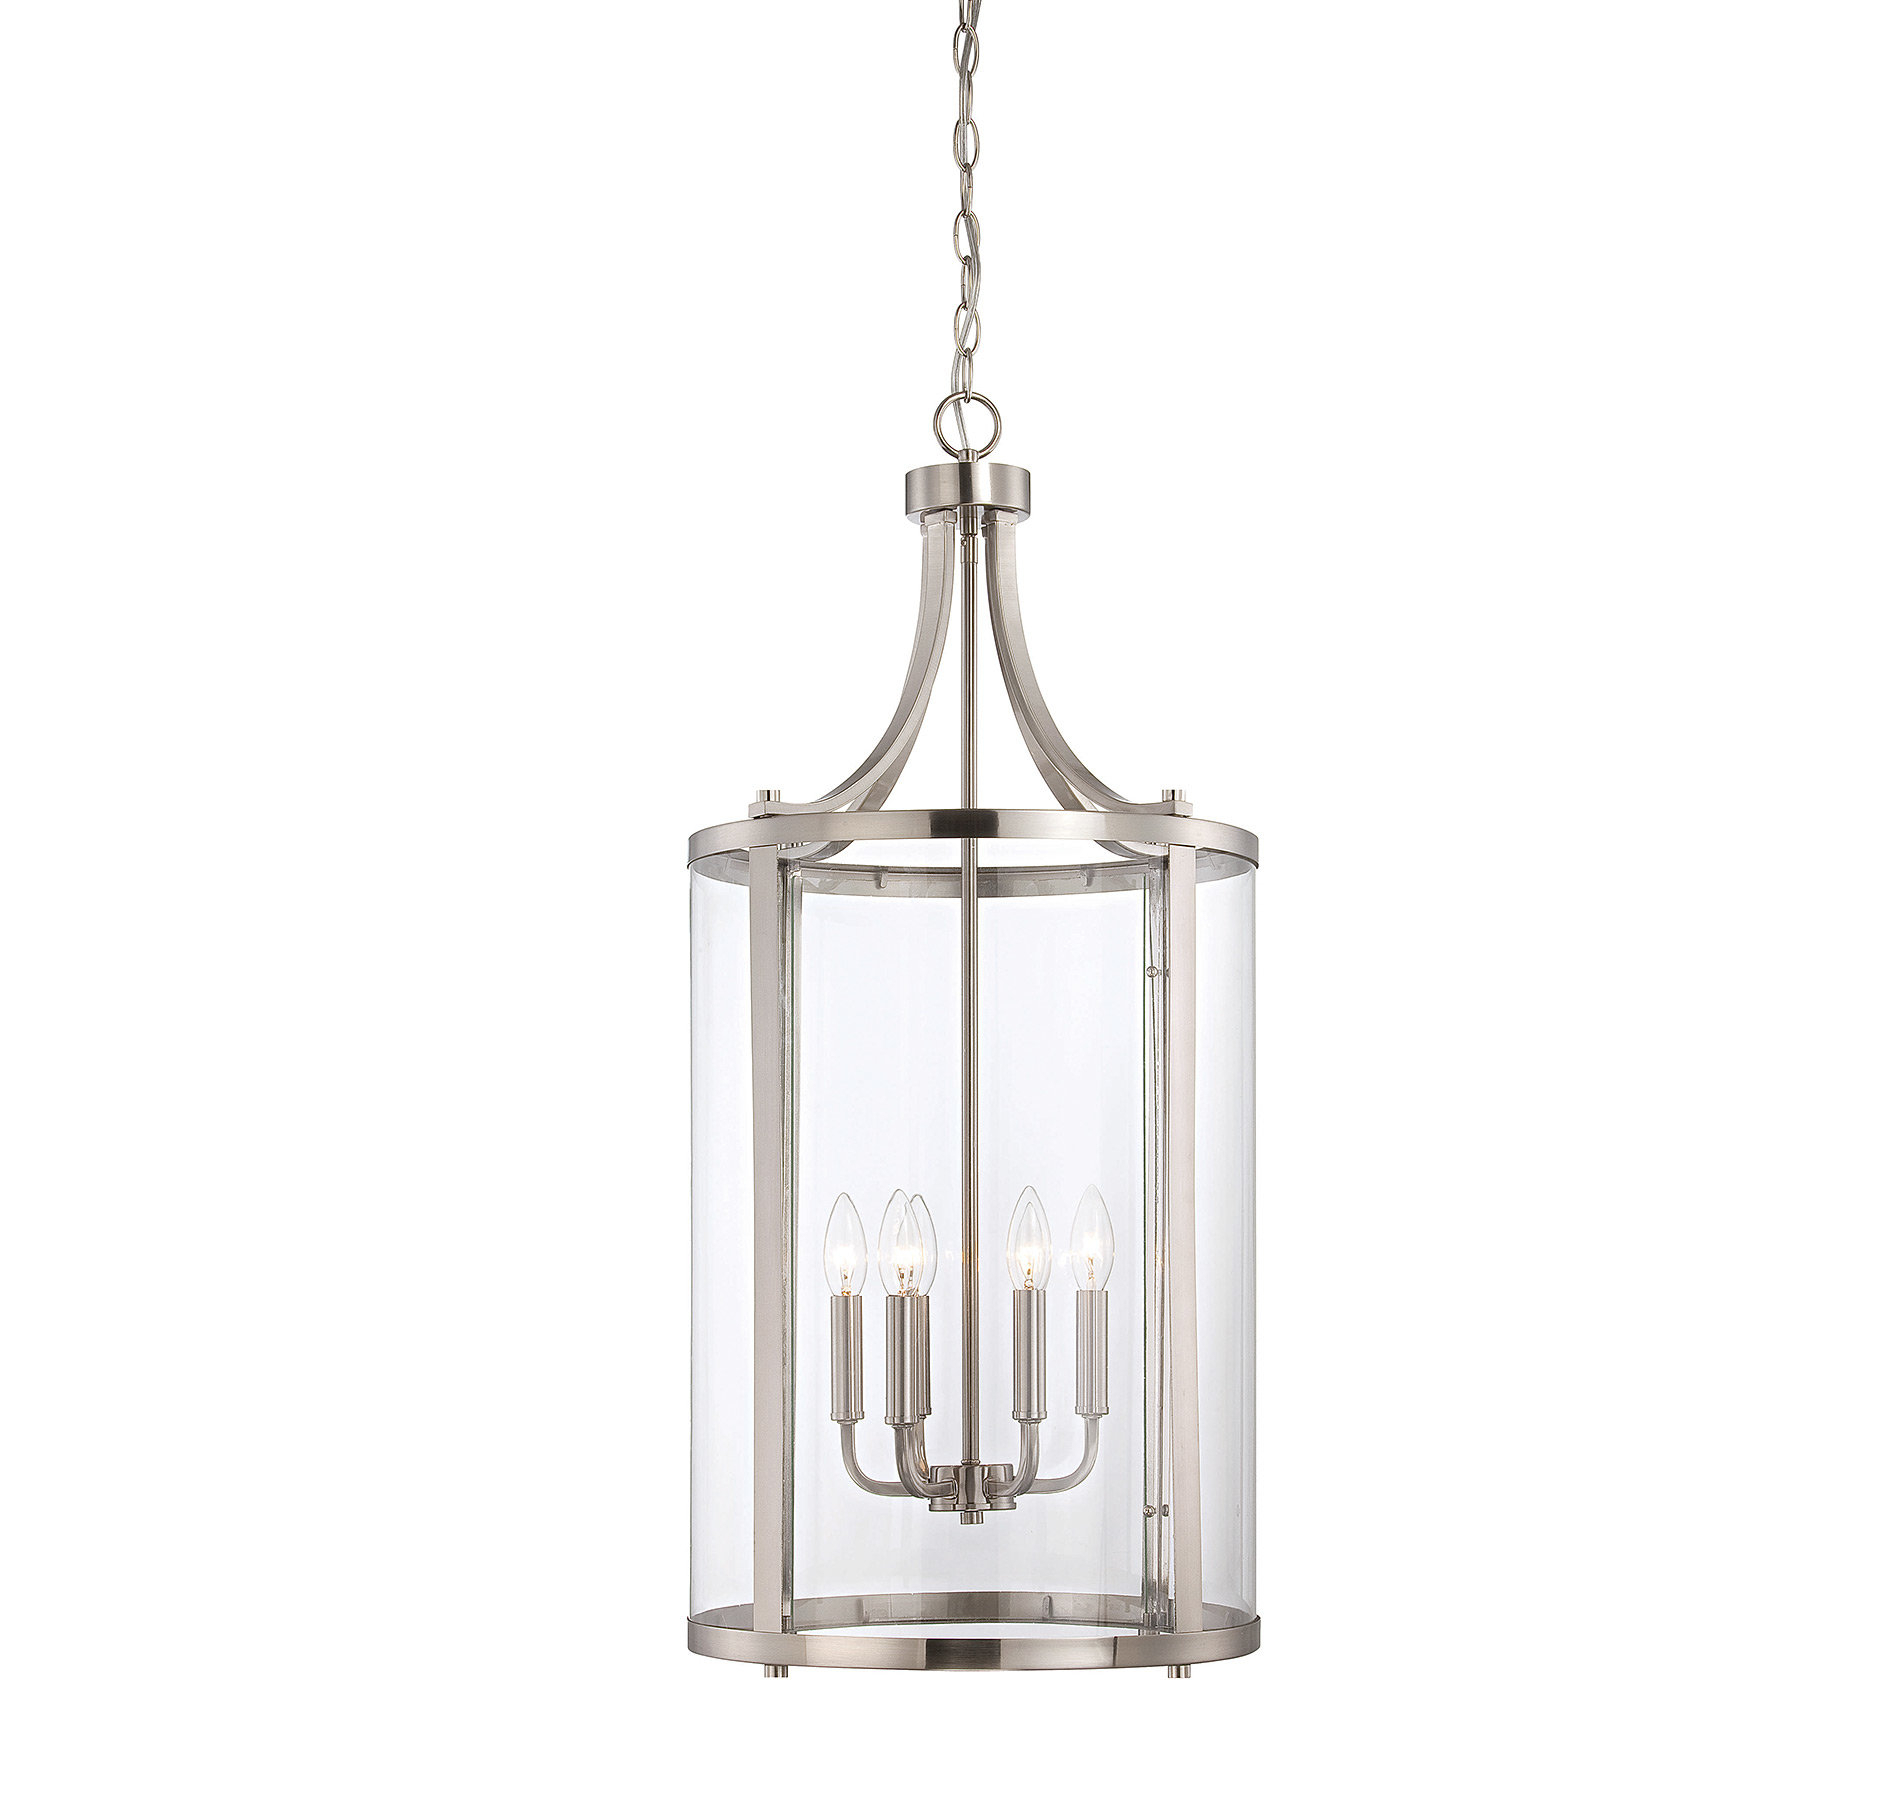 Brookville 6-Light Lantern Cylinder Pendant throughout Armande 3-Light Lantern Geometric Pendants (Image 11 of 30)